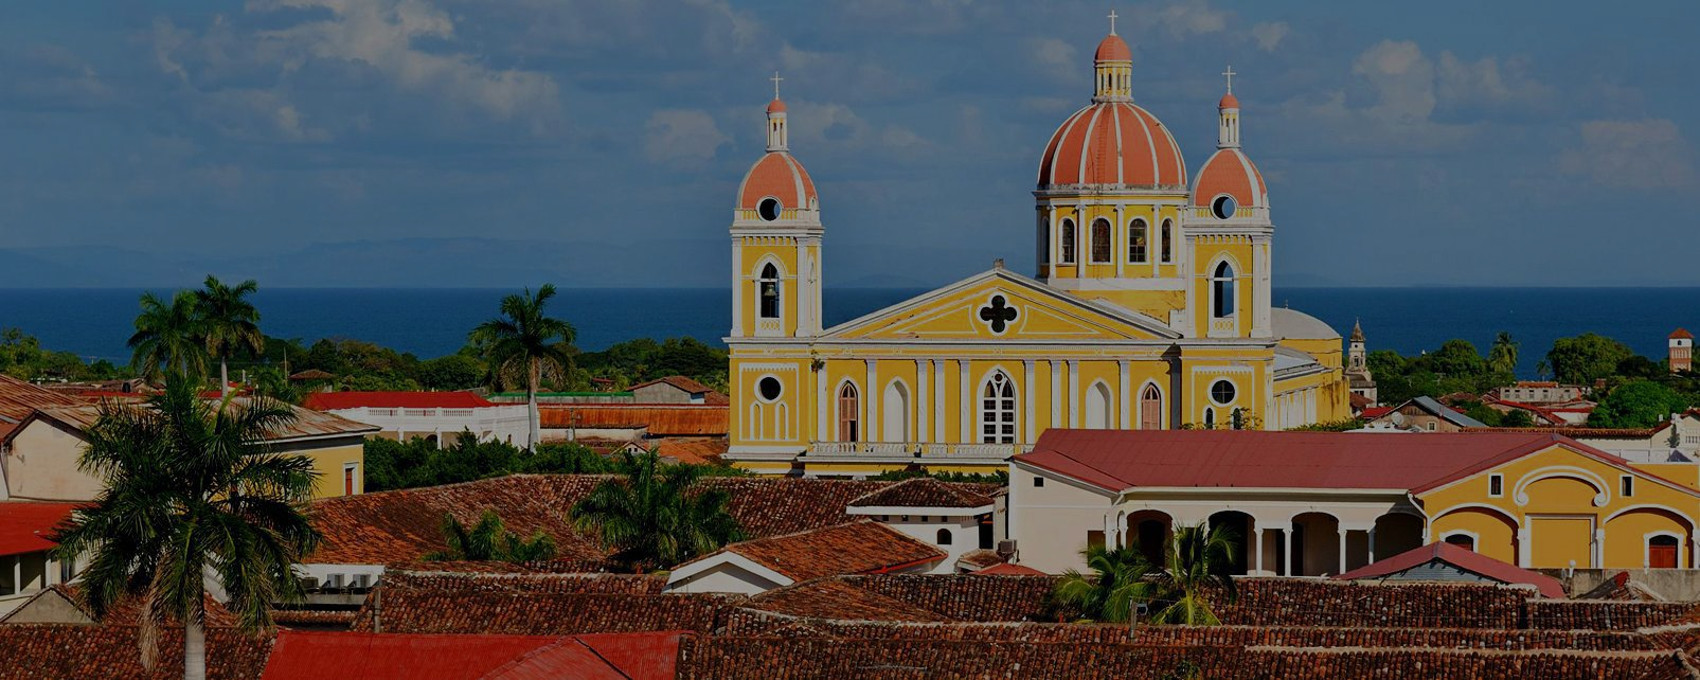 Nicaragua One Day Tour From Costa Rica - Native's Way Costa Rica - Tamarindo Tours & Transfers